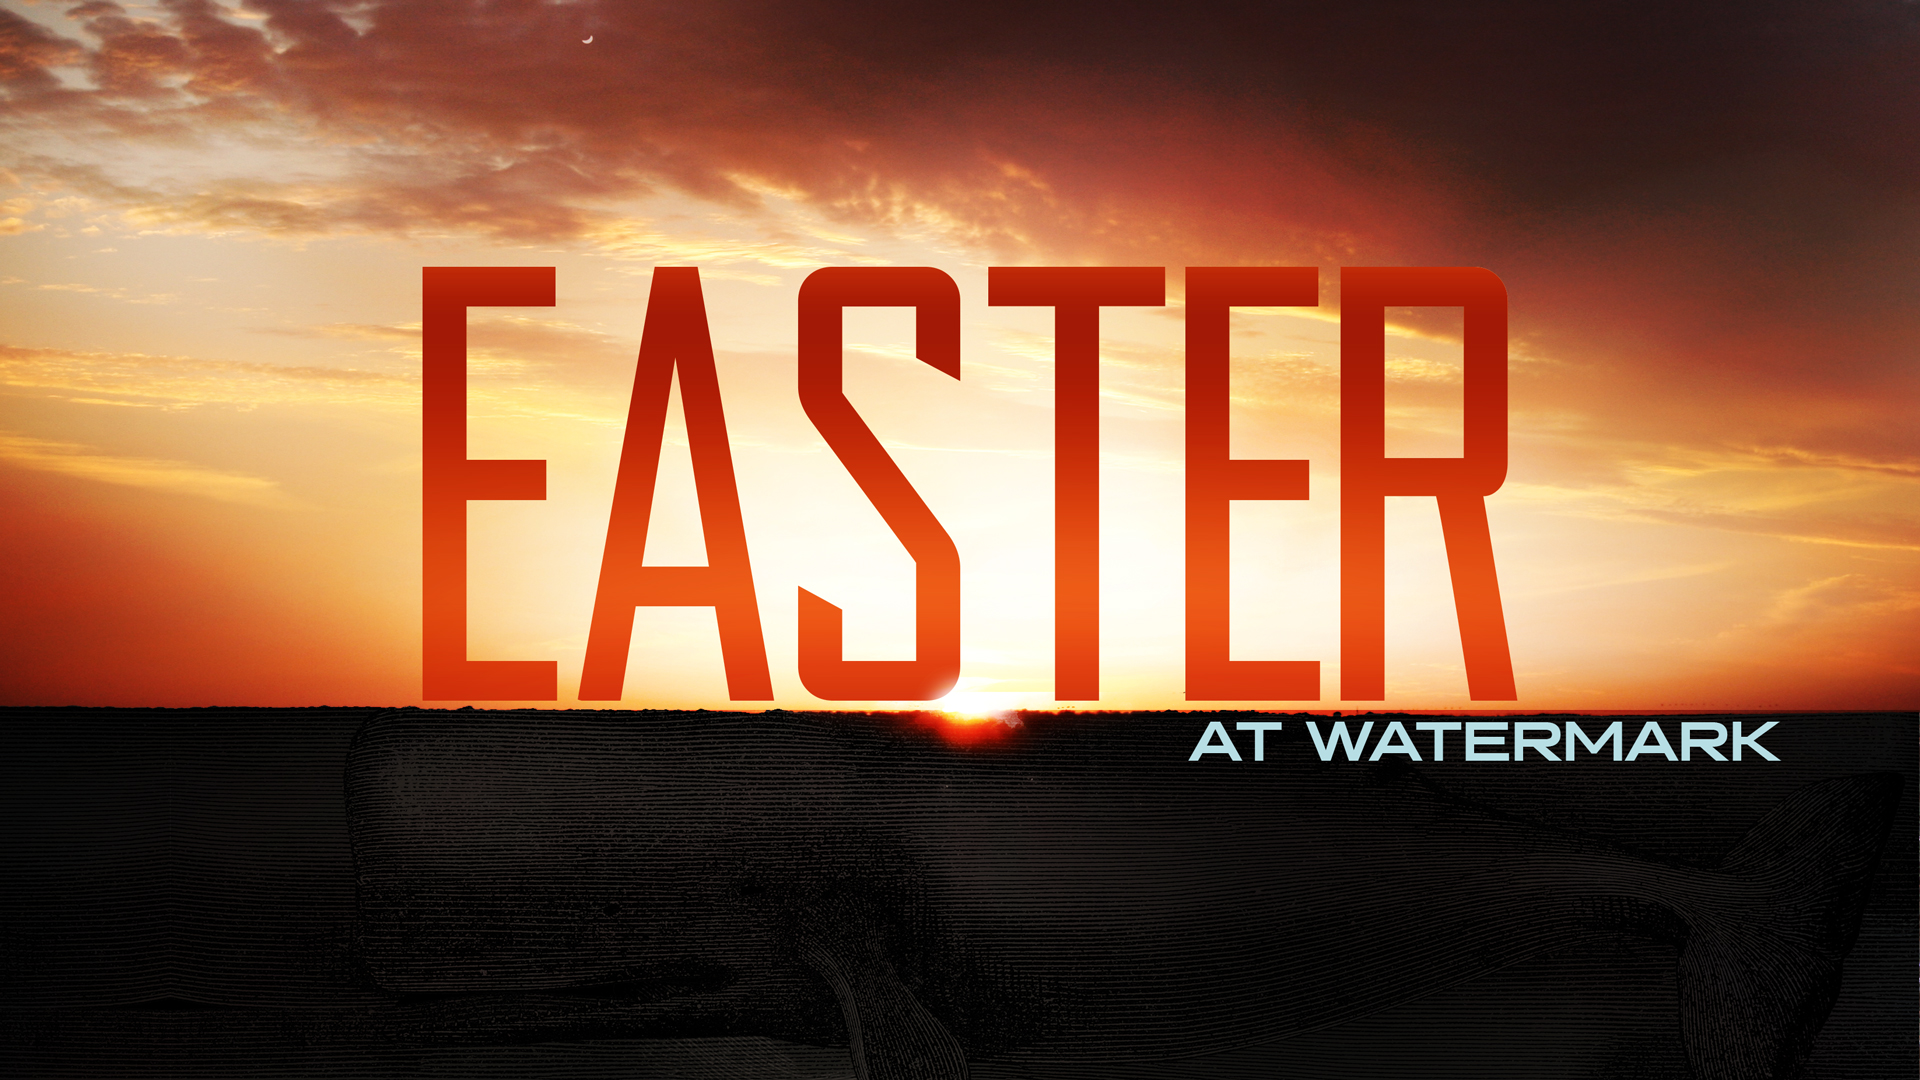 Easter: The Greatest Evidence That God Is Real, Good, Powerful and Trustworthy